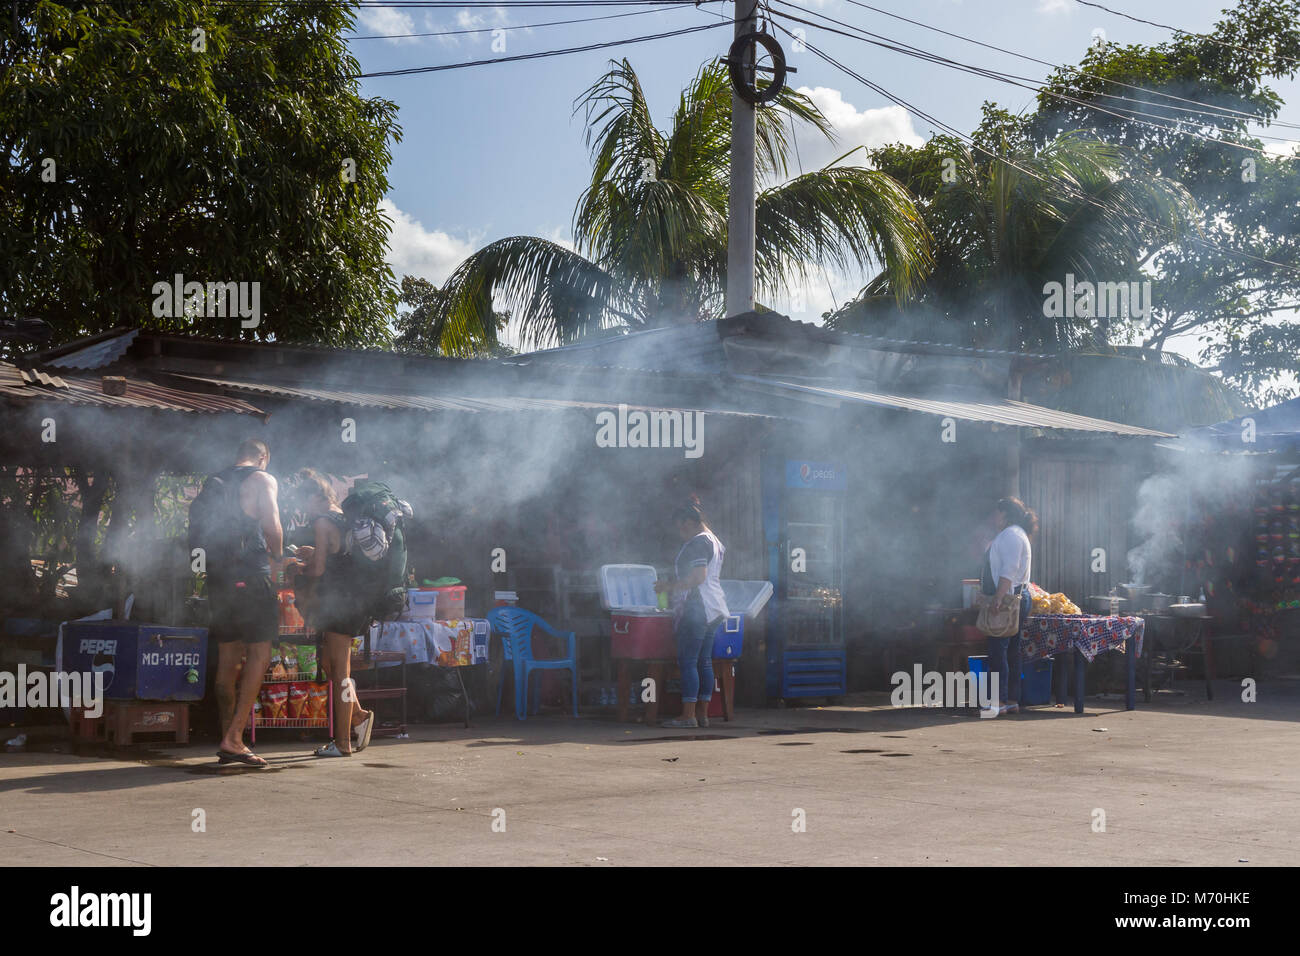 Peñas Blancas, Nicaragua - January 22: Smoky bbq attracting tourists at the border crossing process from Costa - Stock Image